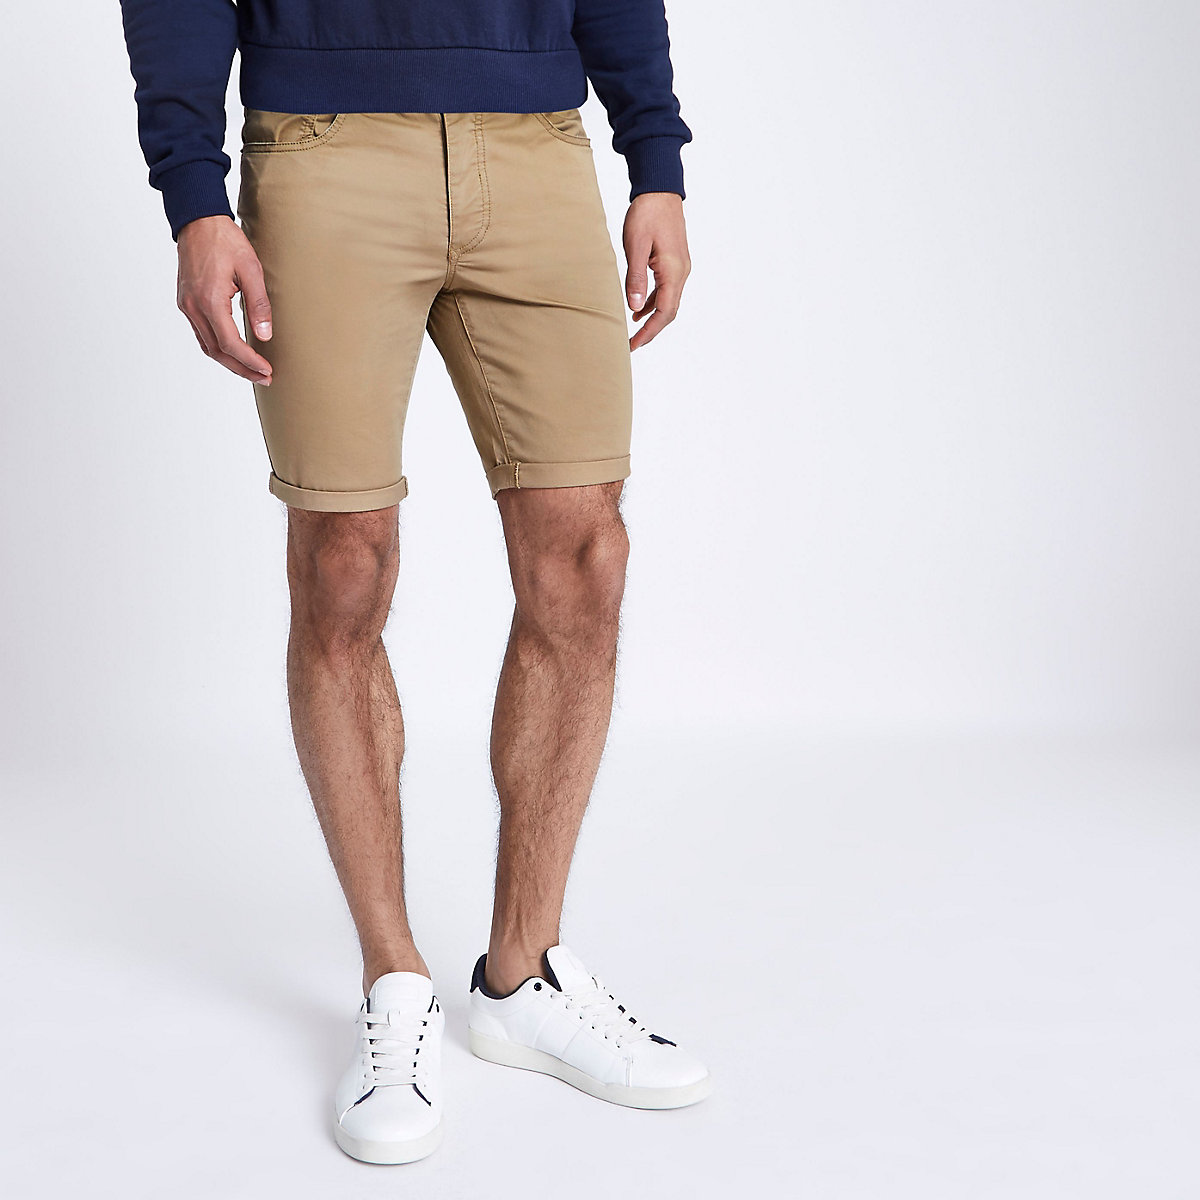 Tan skinny fit chino shorts